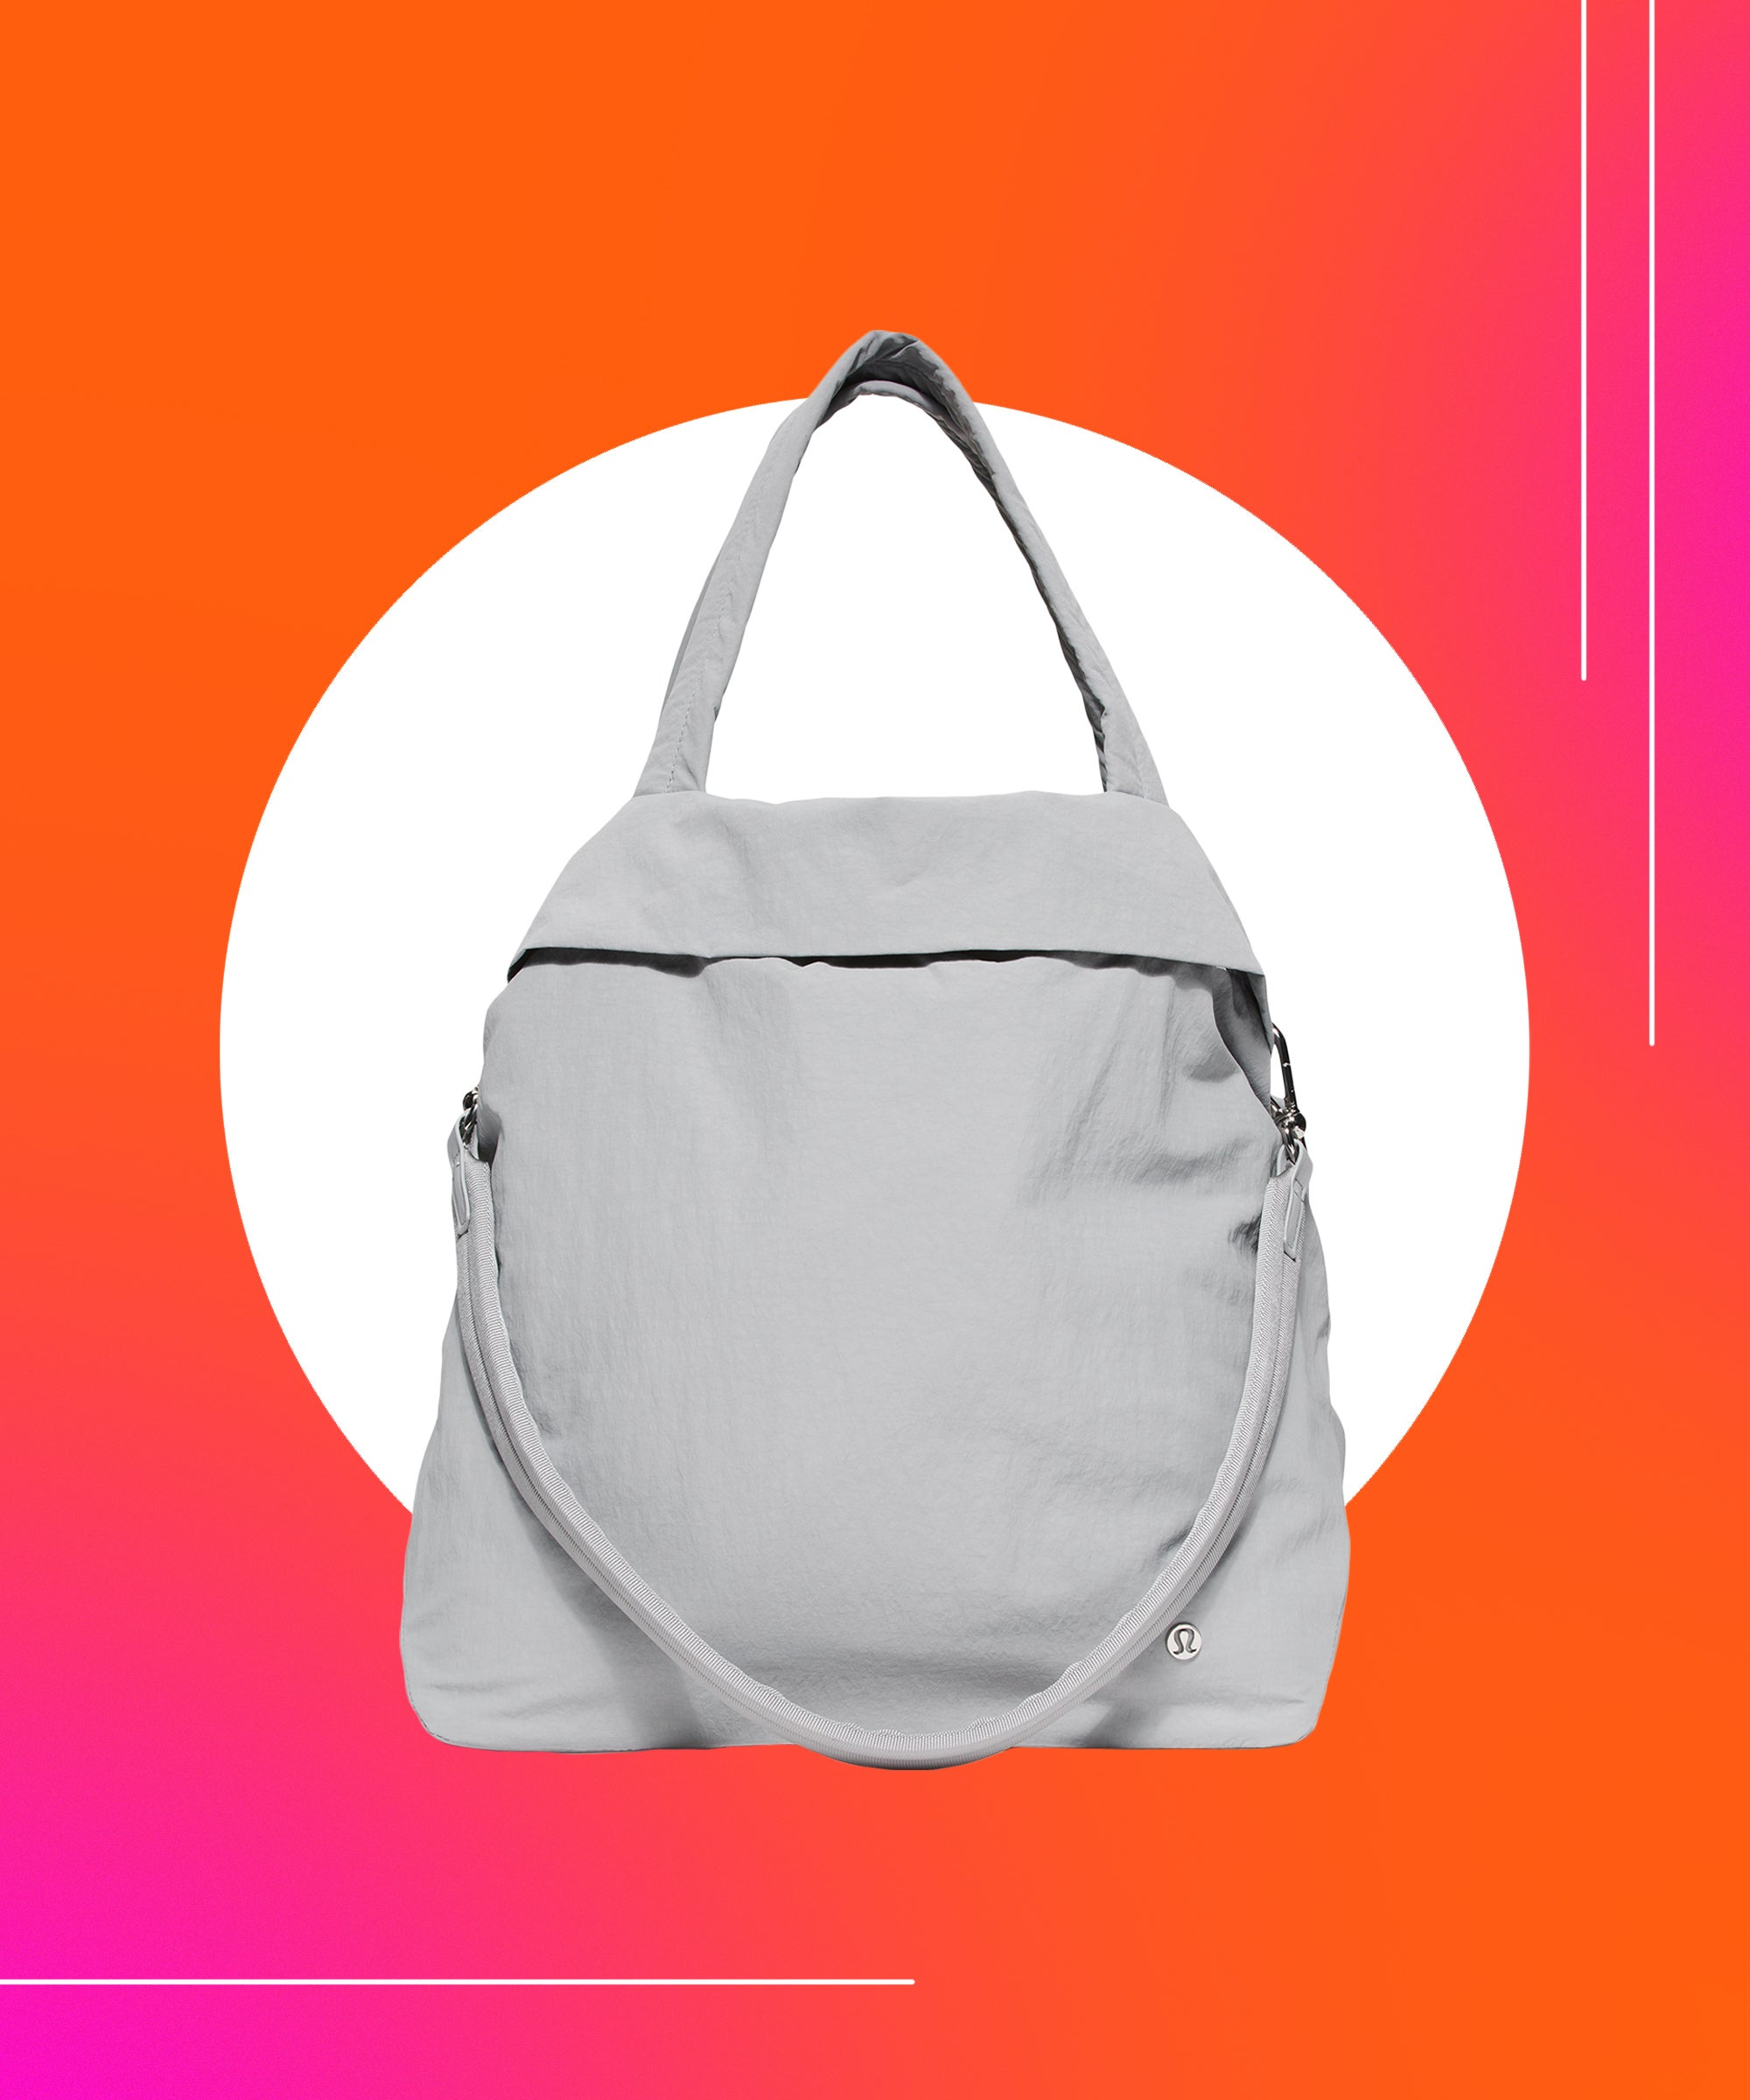 Best Gym Bags For Women - Fitness Totes, Sports Duffles